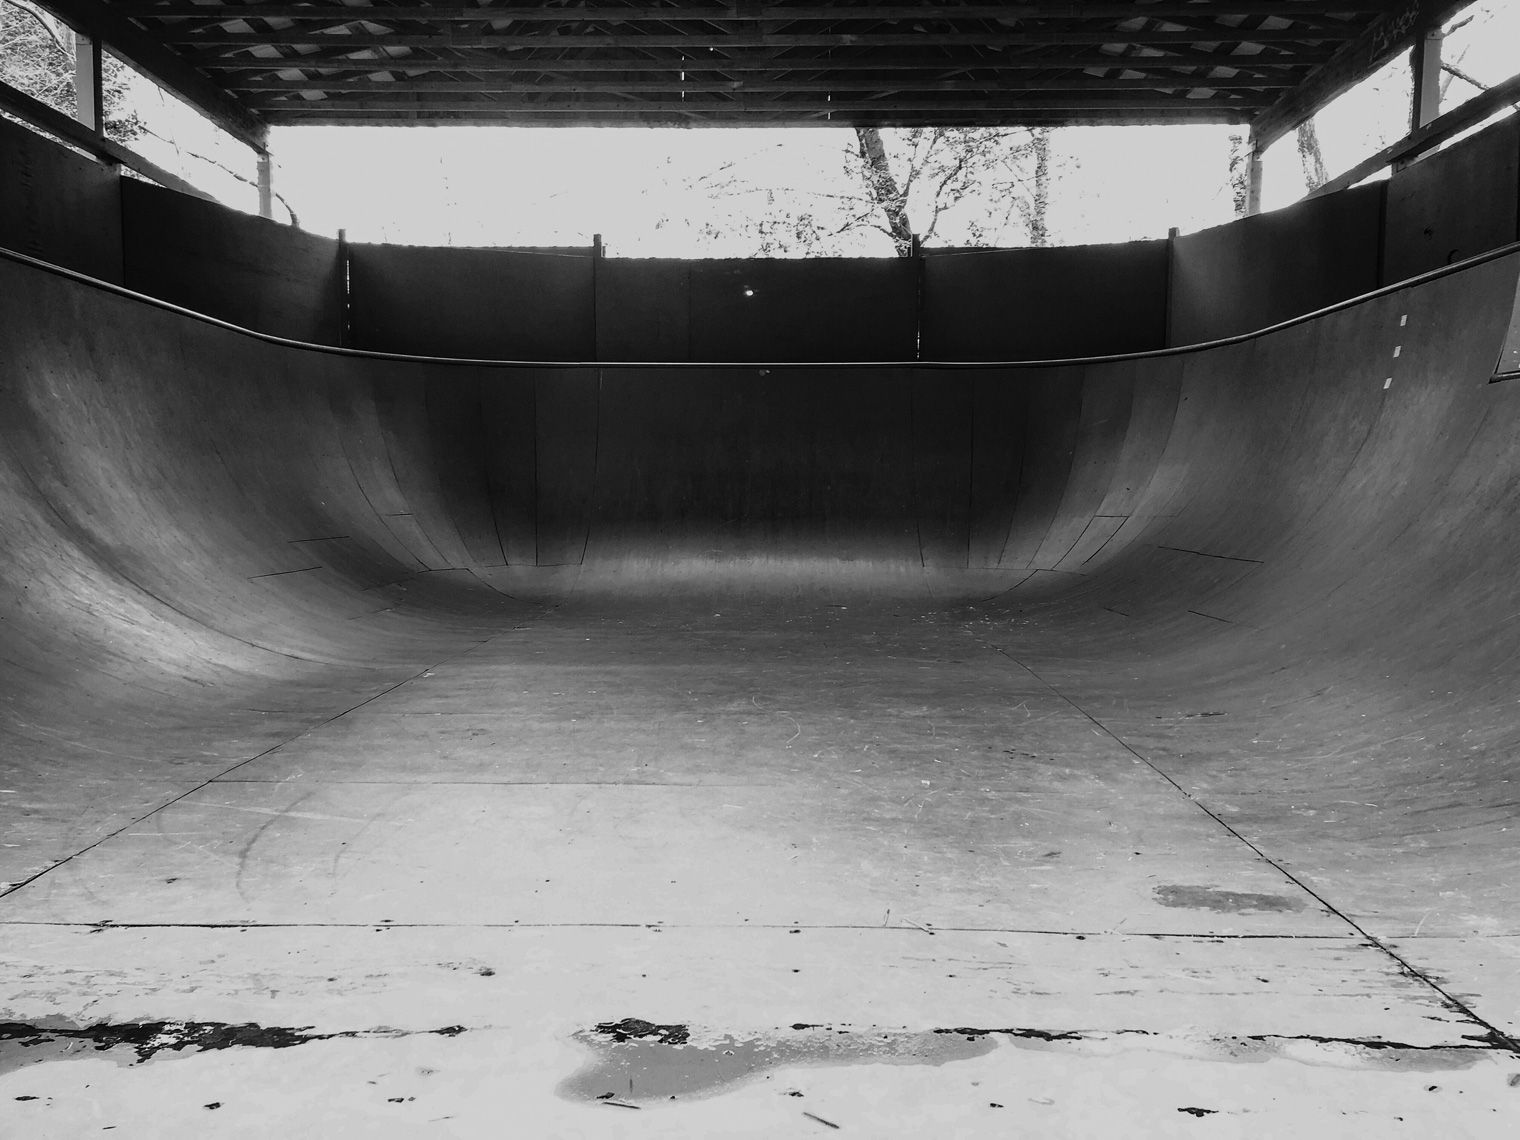 RoadTripping_SkateparkProject_Park08_Town_Retouched_Web